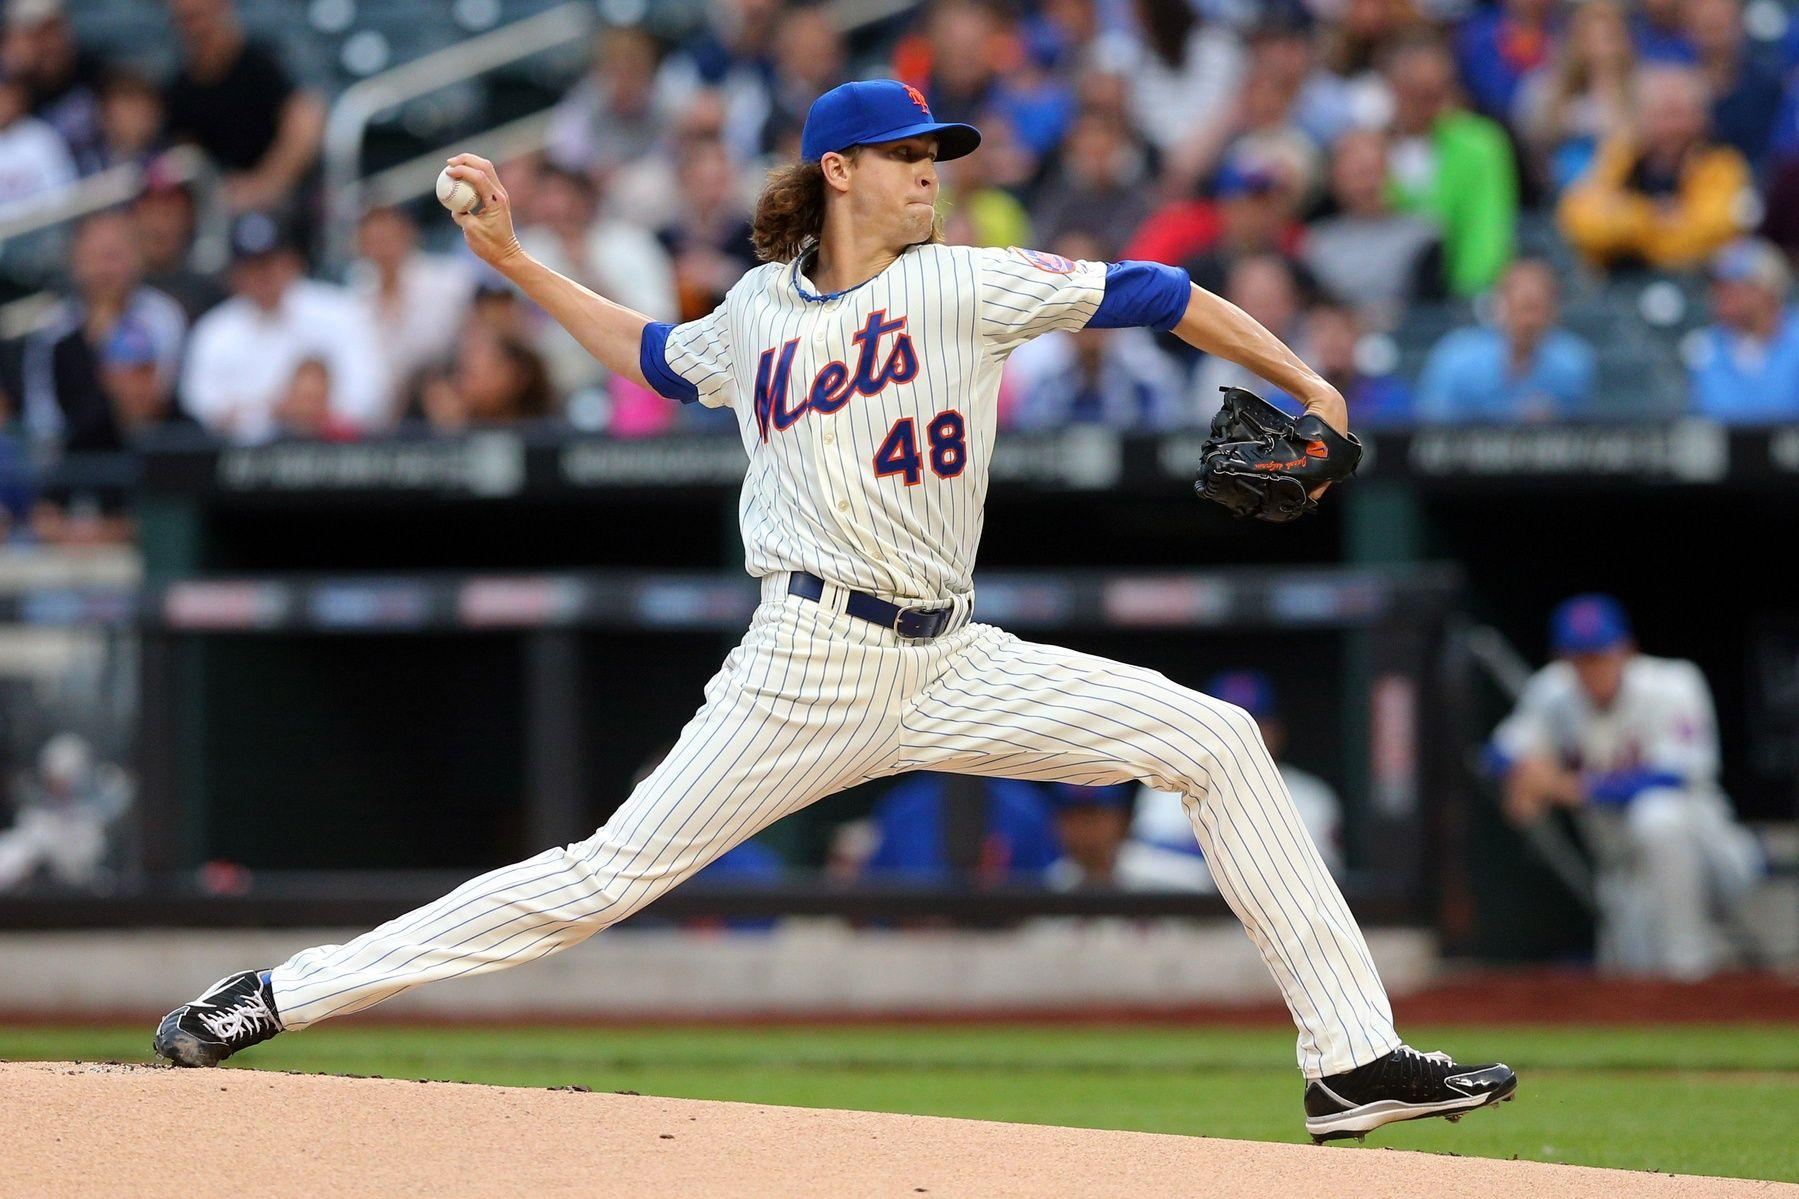 Jacob deGrom's Brilliant Season – GammonsDaily